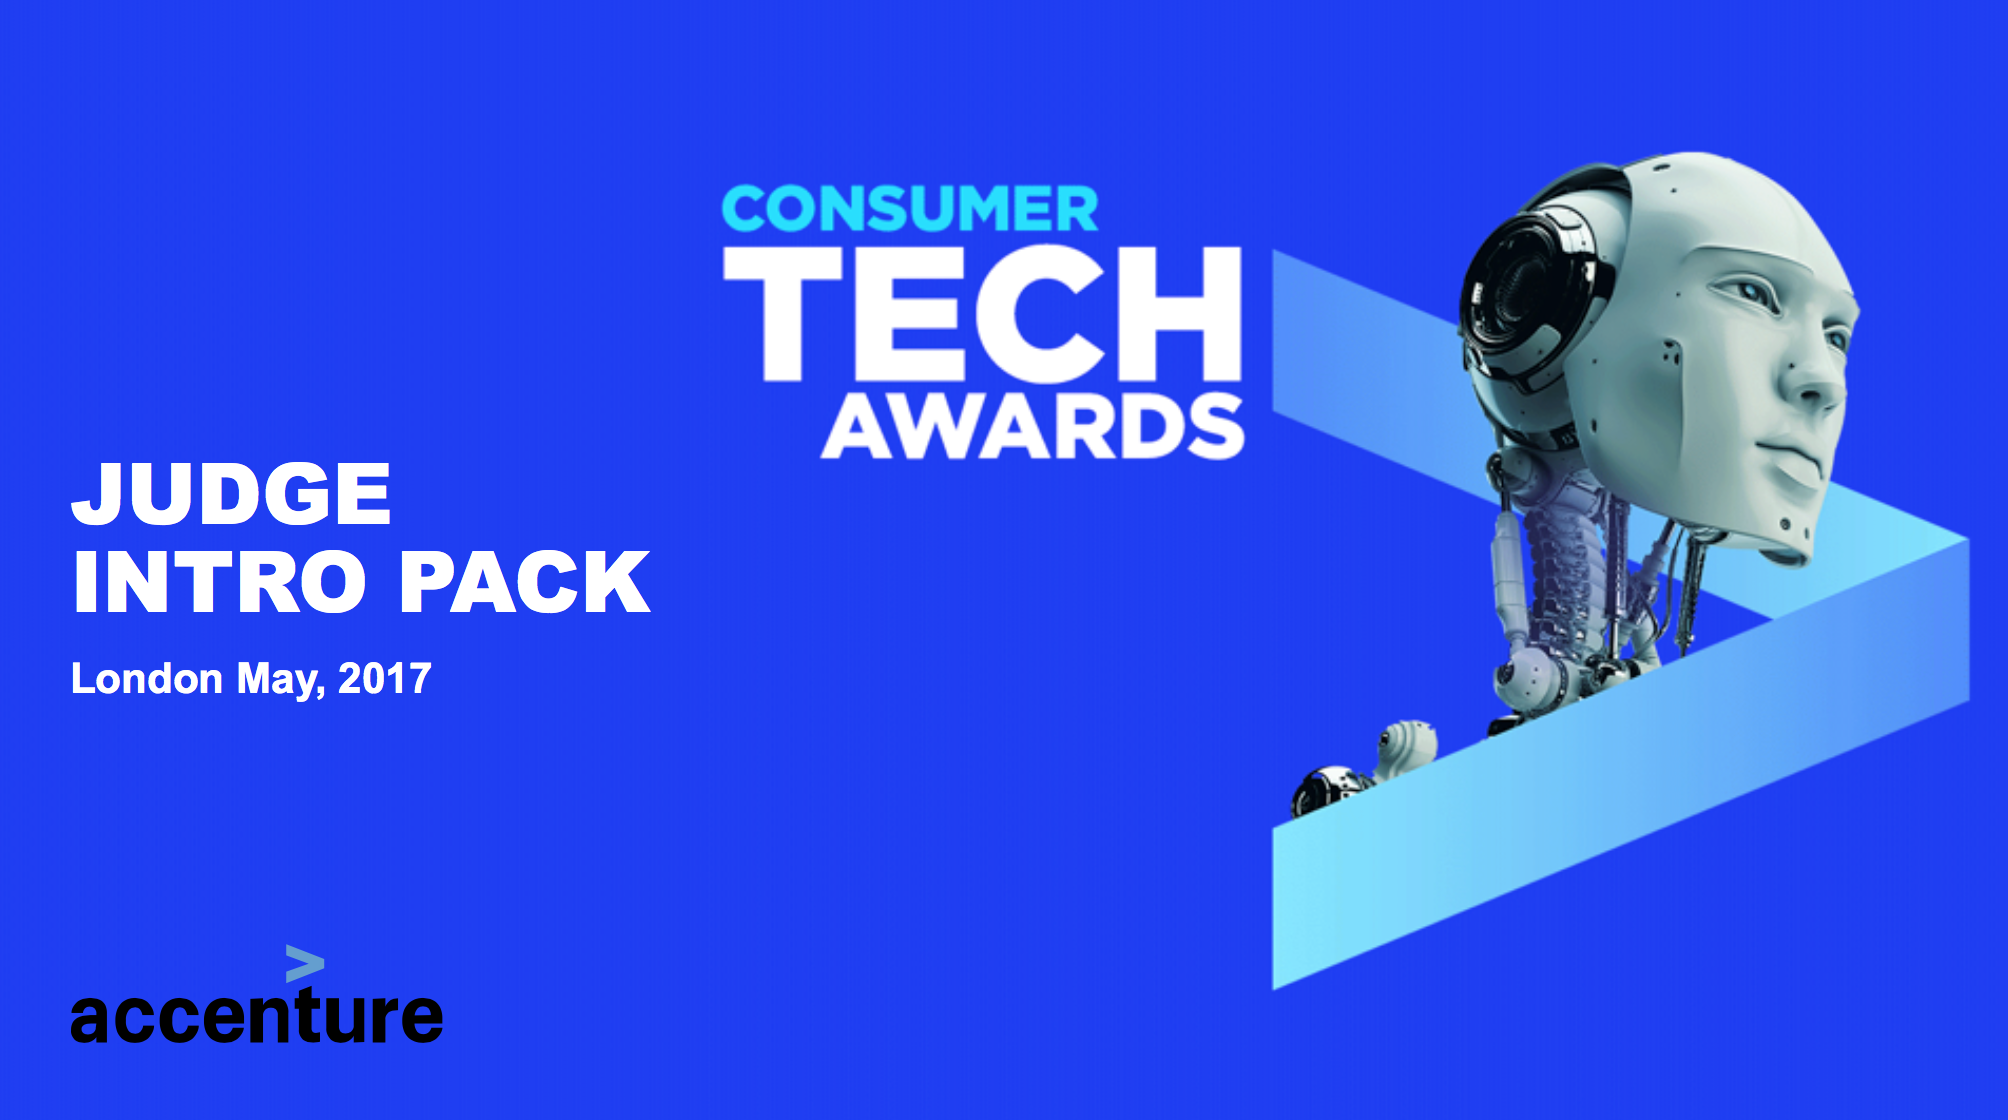 Zesty co-founder asked to judge the Accenture Consumer Tech Awards 2017